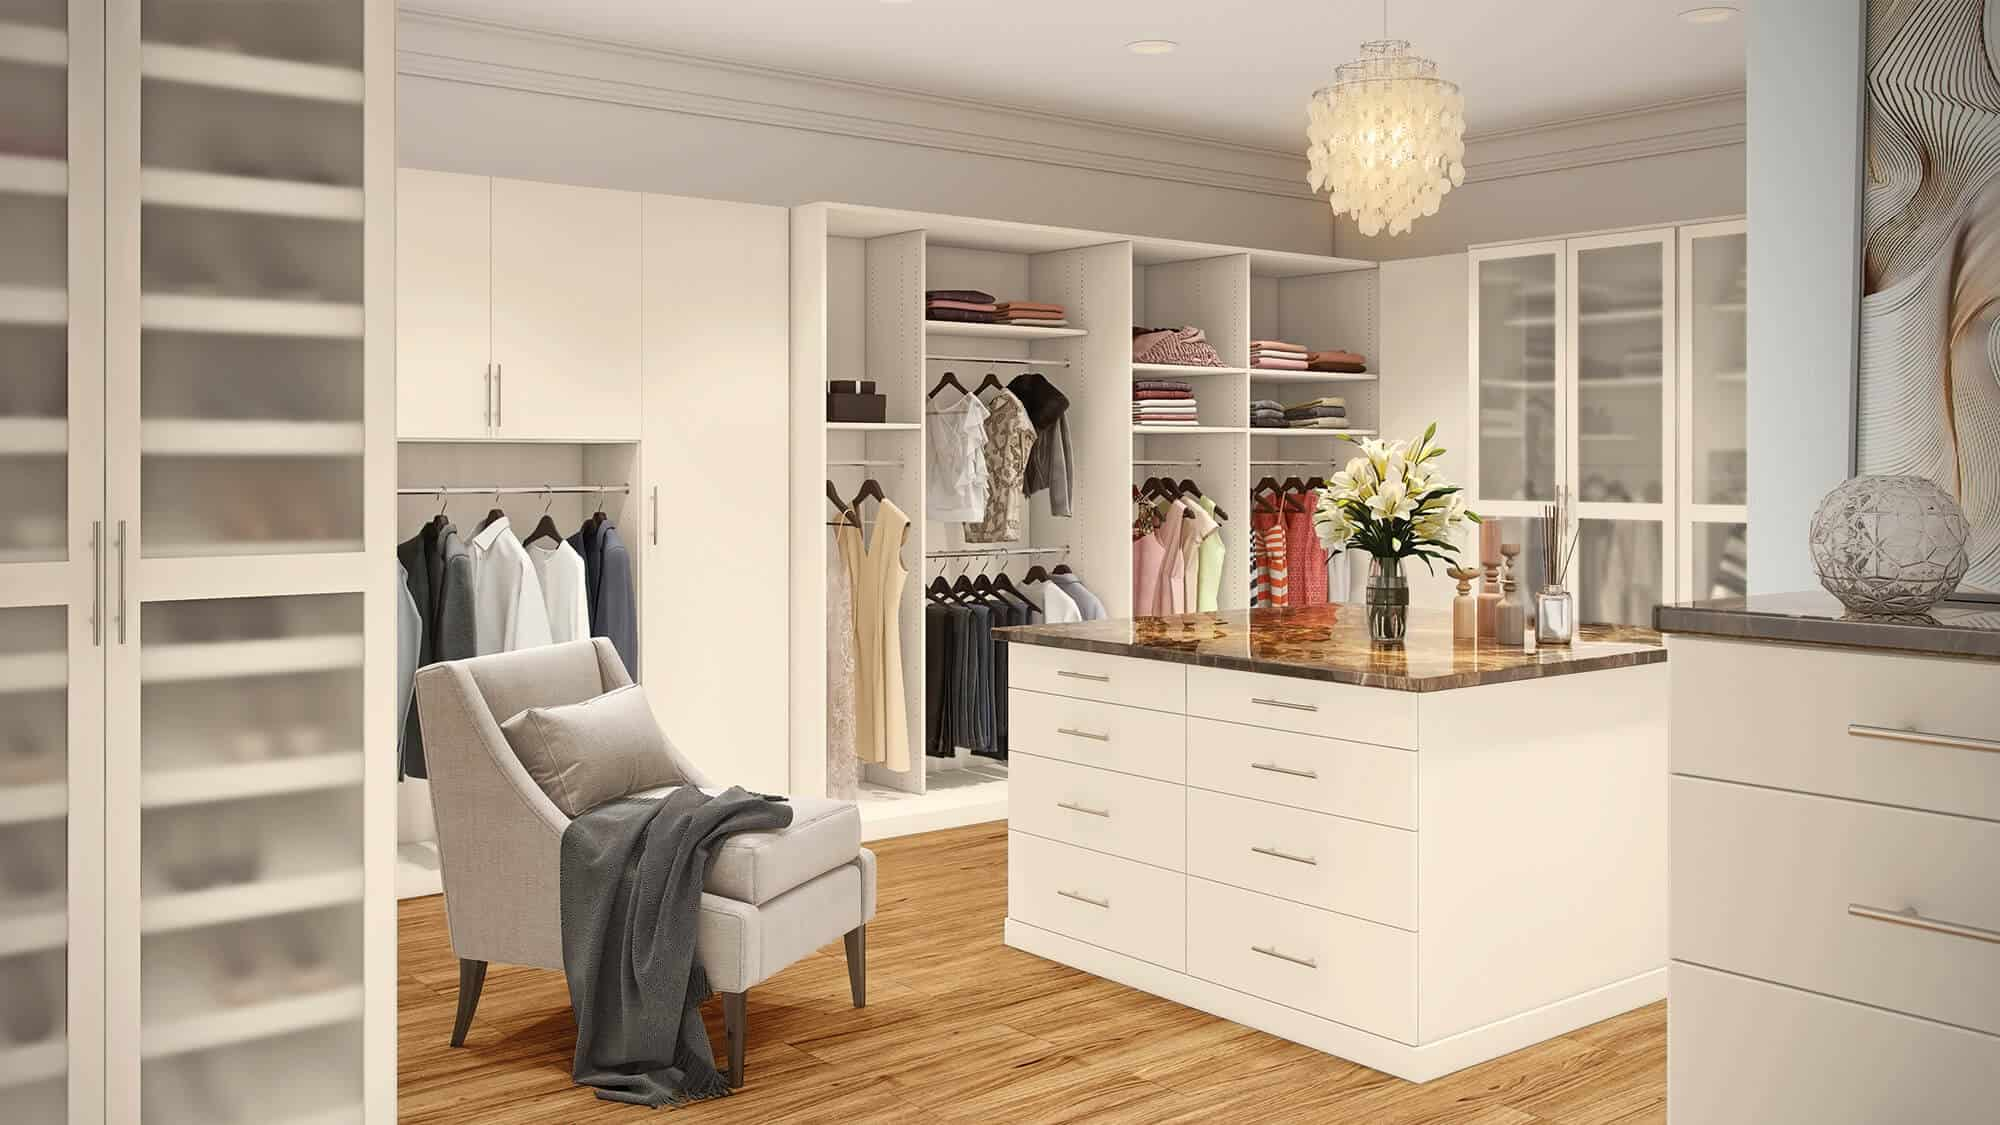 A custom walk-in closet from Closets by Design.